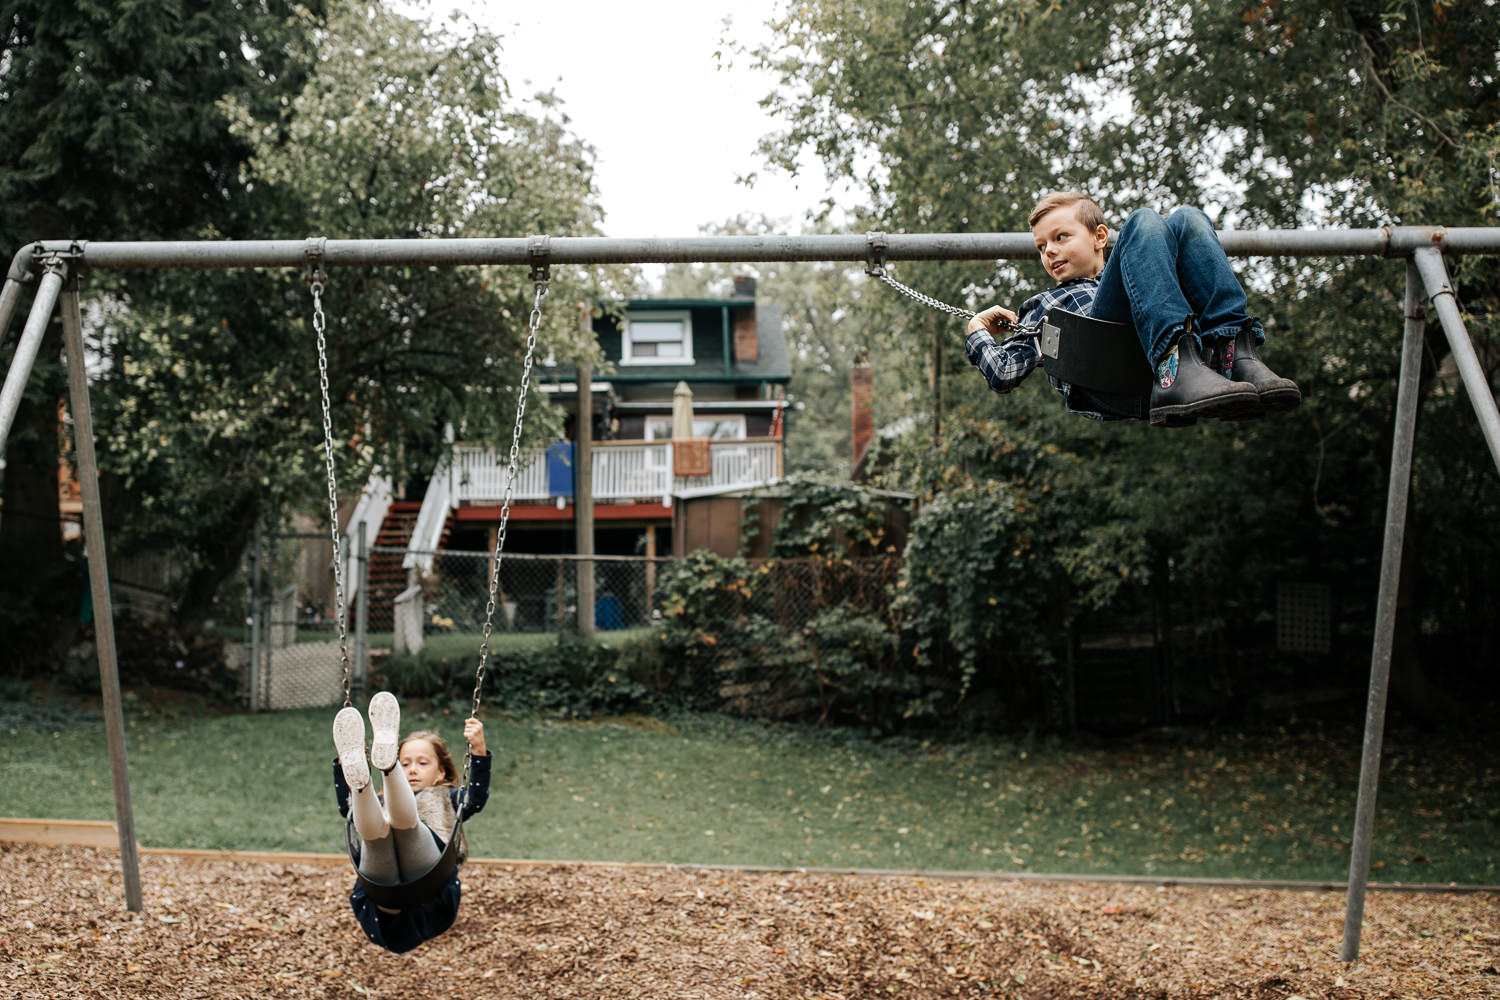 9 year old boy and 7 year old girl at outdoor park in the city swinging on swing set, brother swinging high in air and looking to the side - GTA In-Home Photography